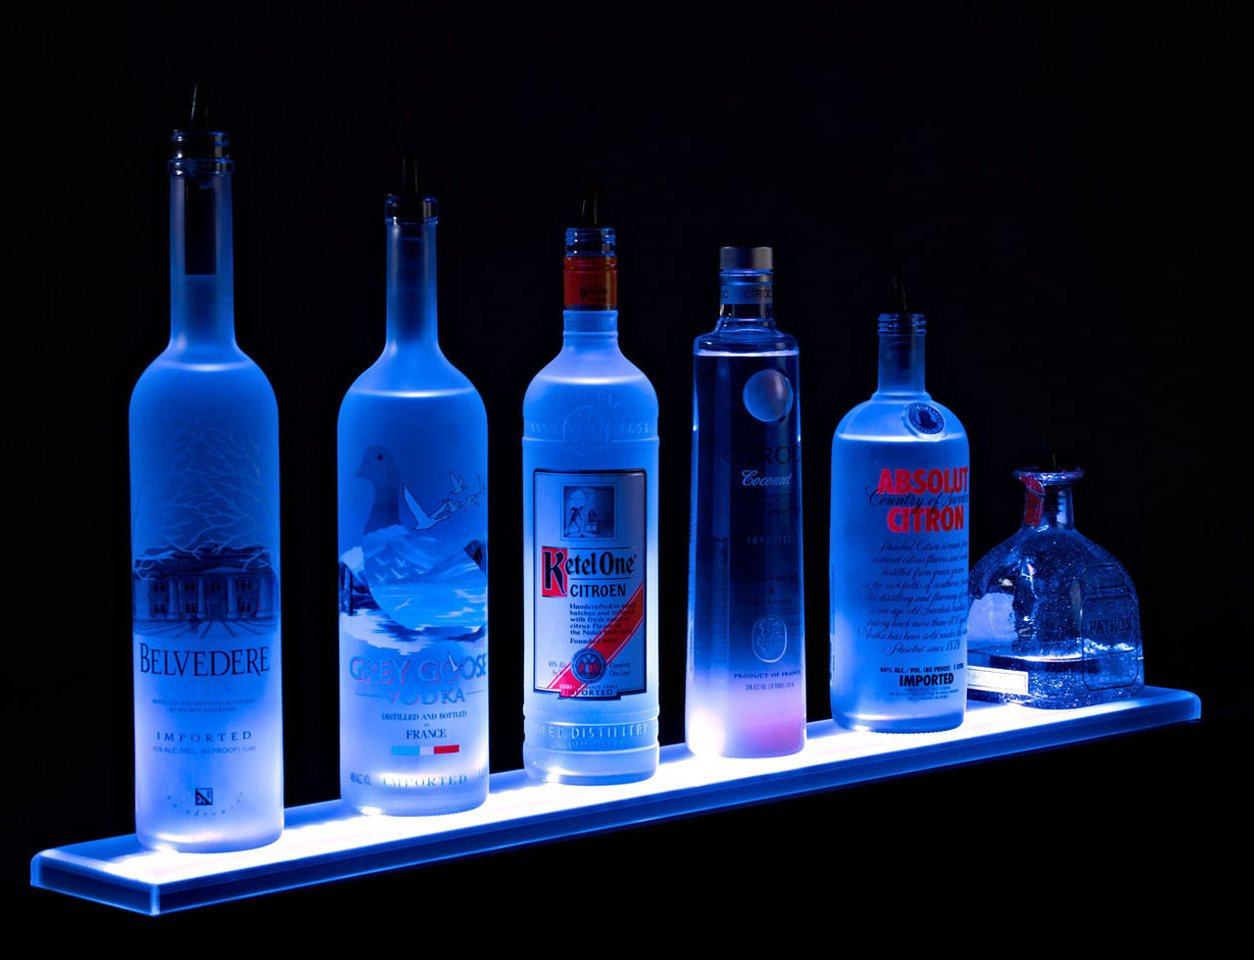 2' 3'' Long LED Liquor Bottle Shelves with Wall Mount Brackets, Wireless Remote Control, and UL Listed power supply